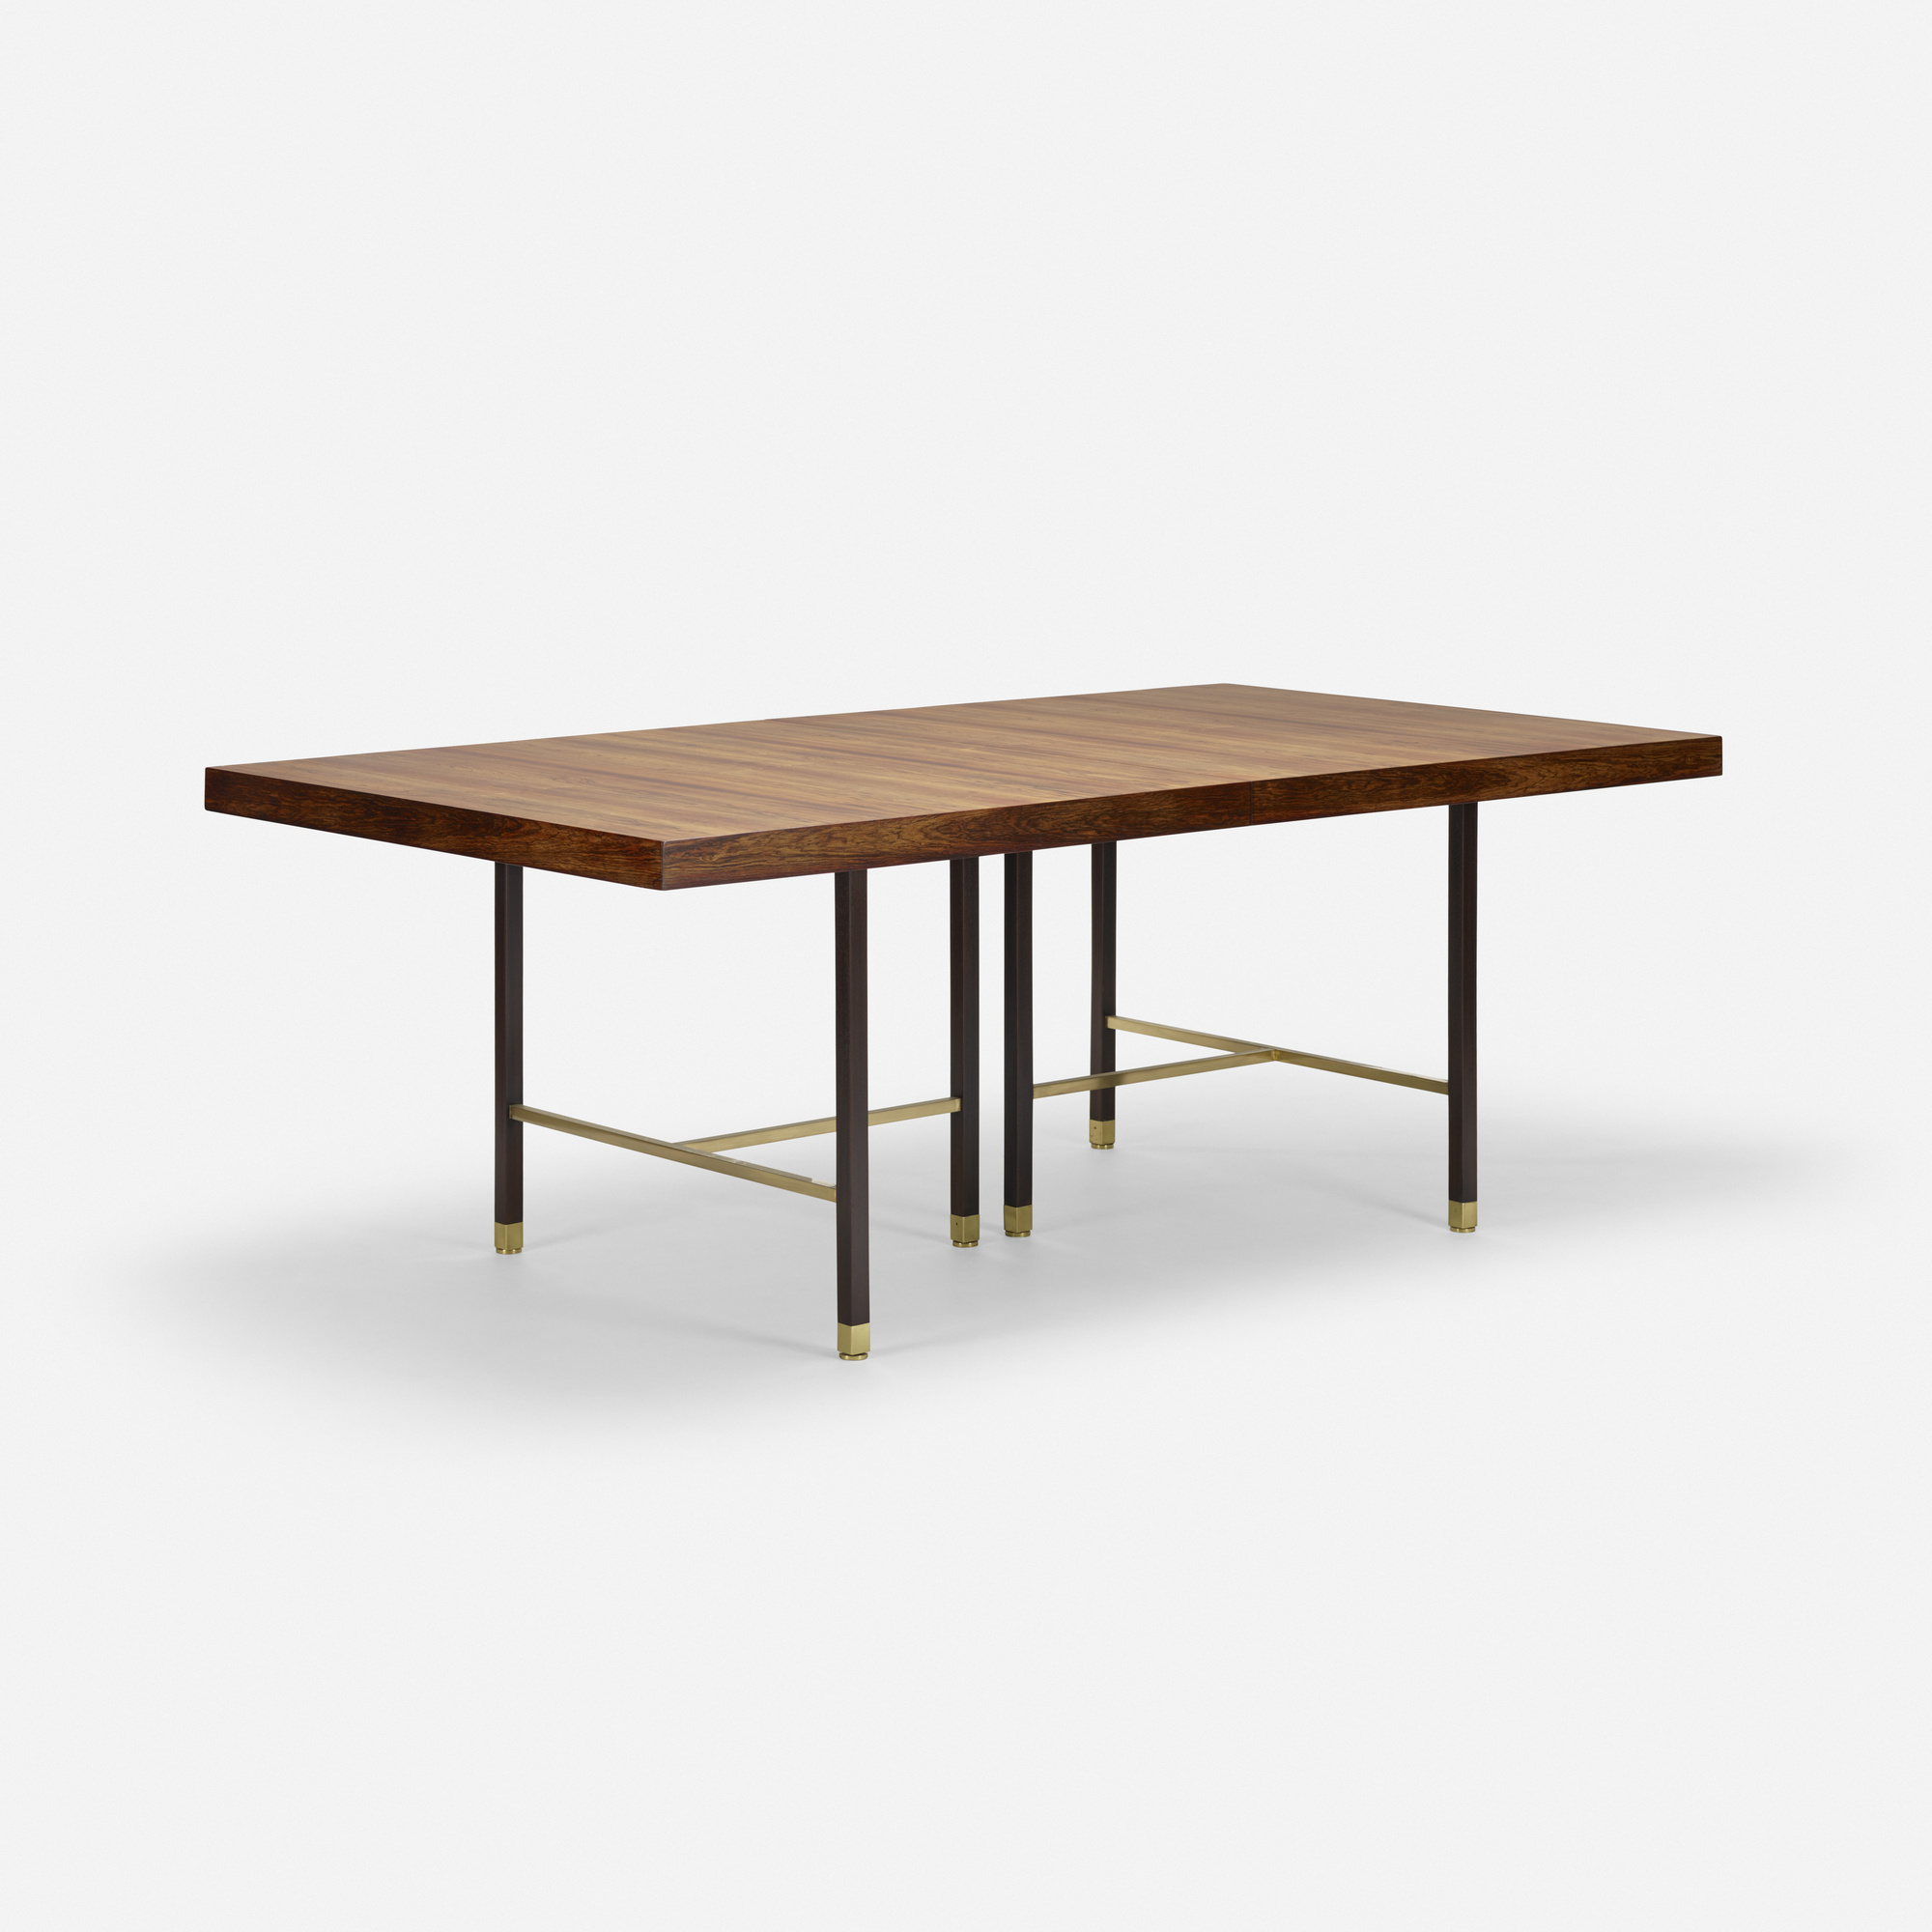 160: Harvey Probber / dining table (1 of 4)